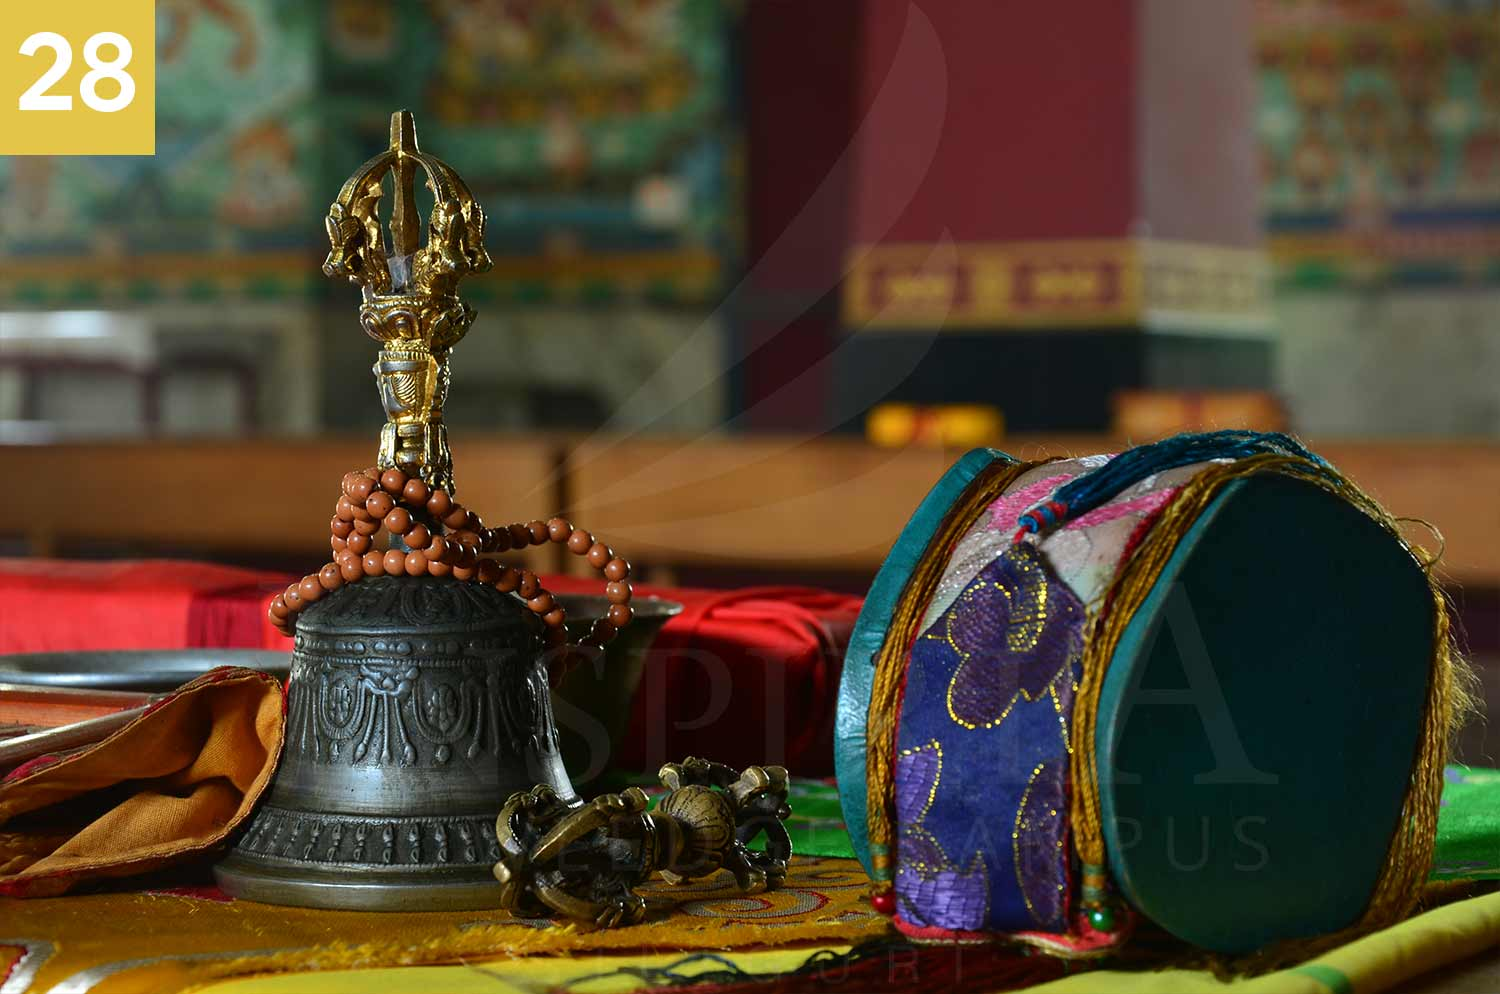 beautiful bell of rangapani monastery, darjeeling district, west bengal